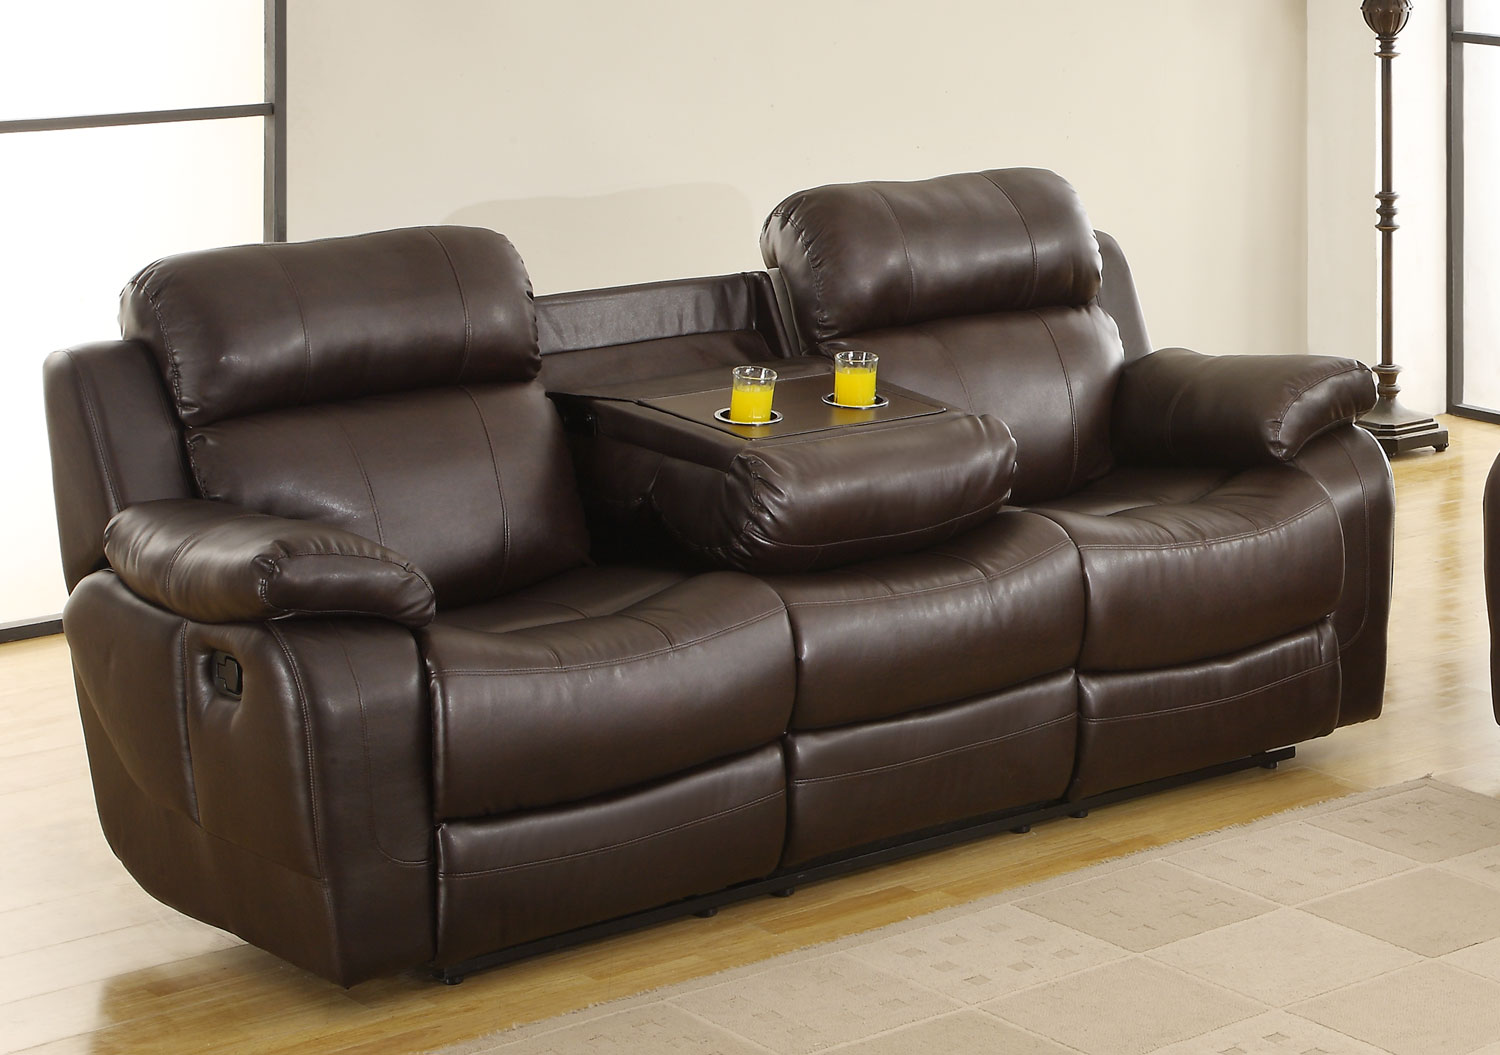 Homelegance Marille Dark Brown Double Reclining Sofa With Center